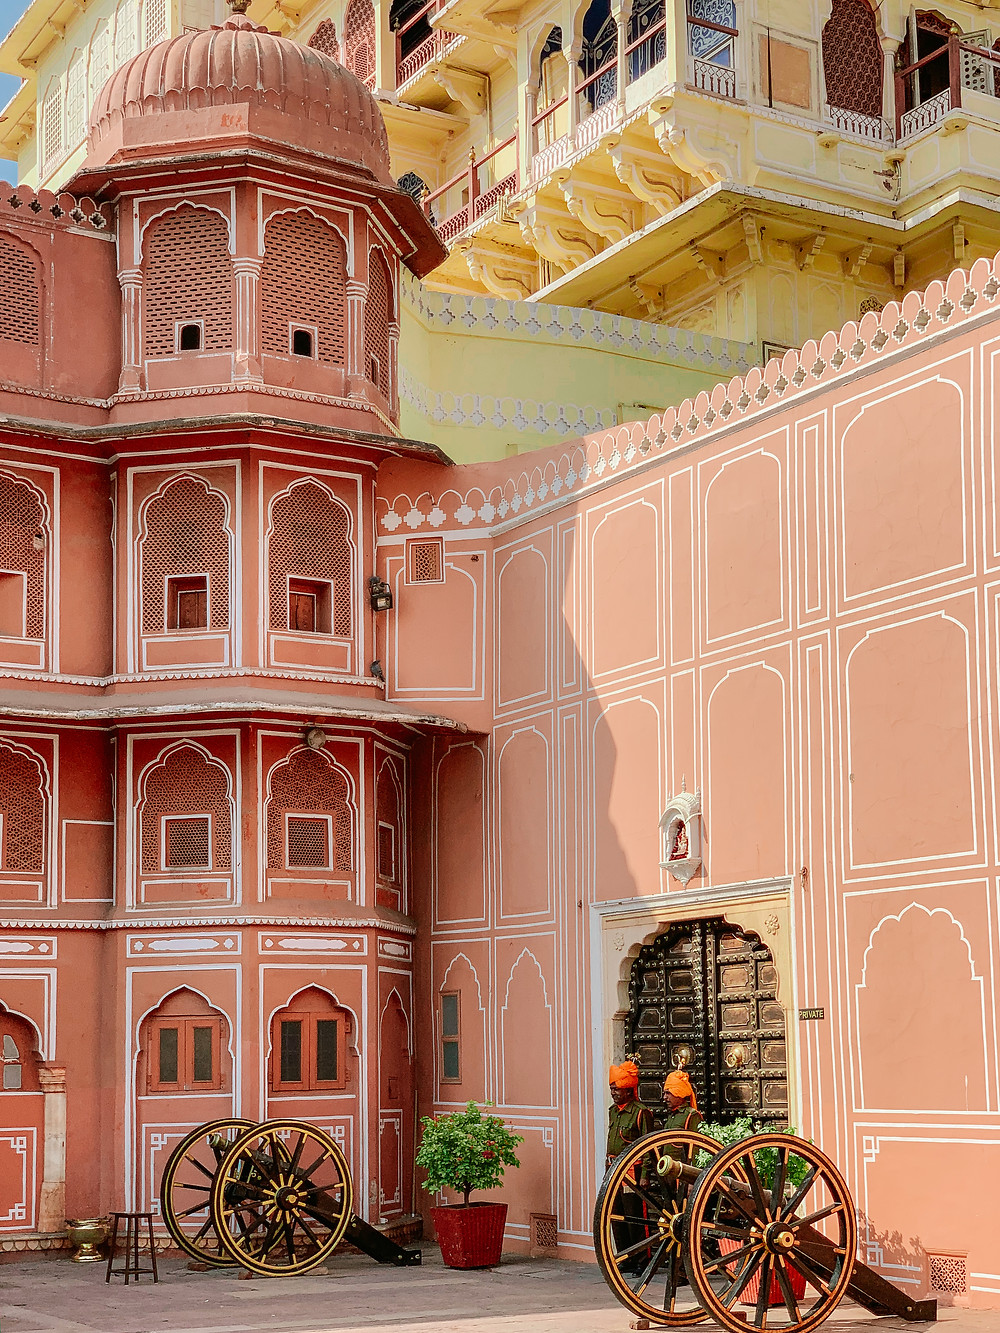 Jaipur's City Palace is one of the prime attractions in Jaipur. It is still home to the royal family of Jaipur, and magnificently represents the impressive blend of Rajput and Mughal architecture. The palace is a vast complex with many courtyards, private rooms, gates and gardens. There are two ticket options - one for the exterior grounds and the other which grants you access to private rooms. Although much pricier, I recommend the latter with a private tour guide who will be very informative on the history of all aspects of the palace. You will feel completely immersed into a bygone era filled with richness and royalty, seeing the intricate work up close in the rooms, and getting a glimpse into how the royals lived.   ​